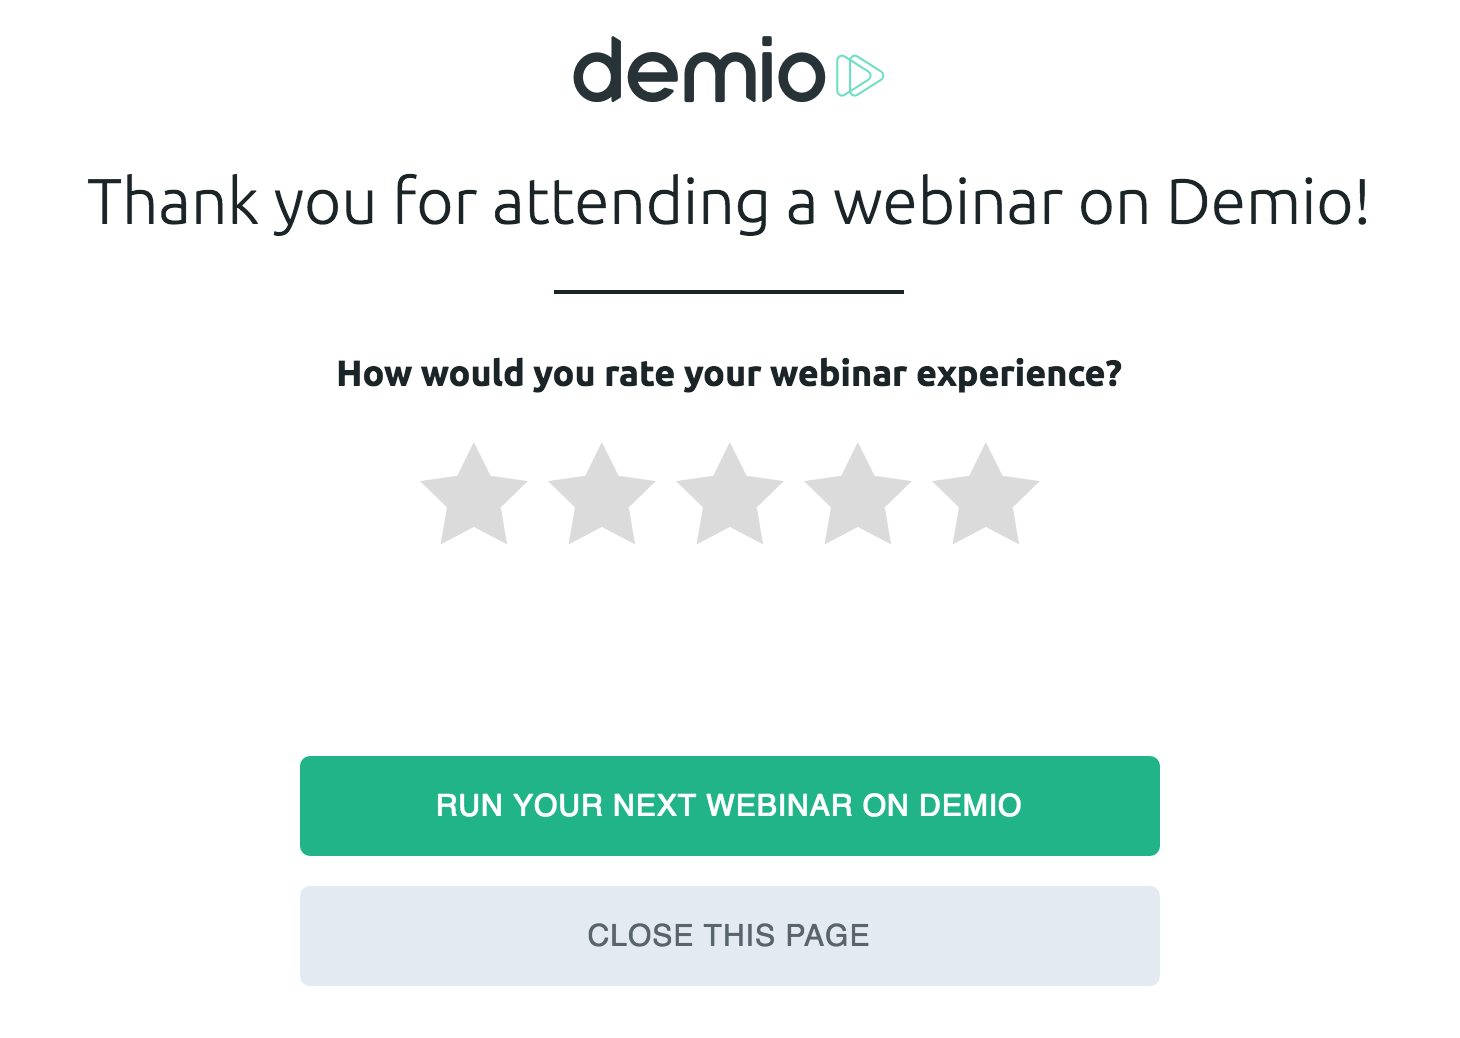 Demio thank you page after a webinar